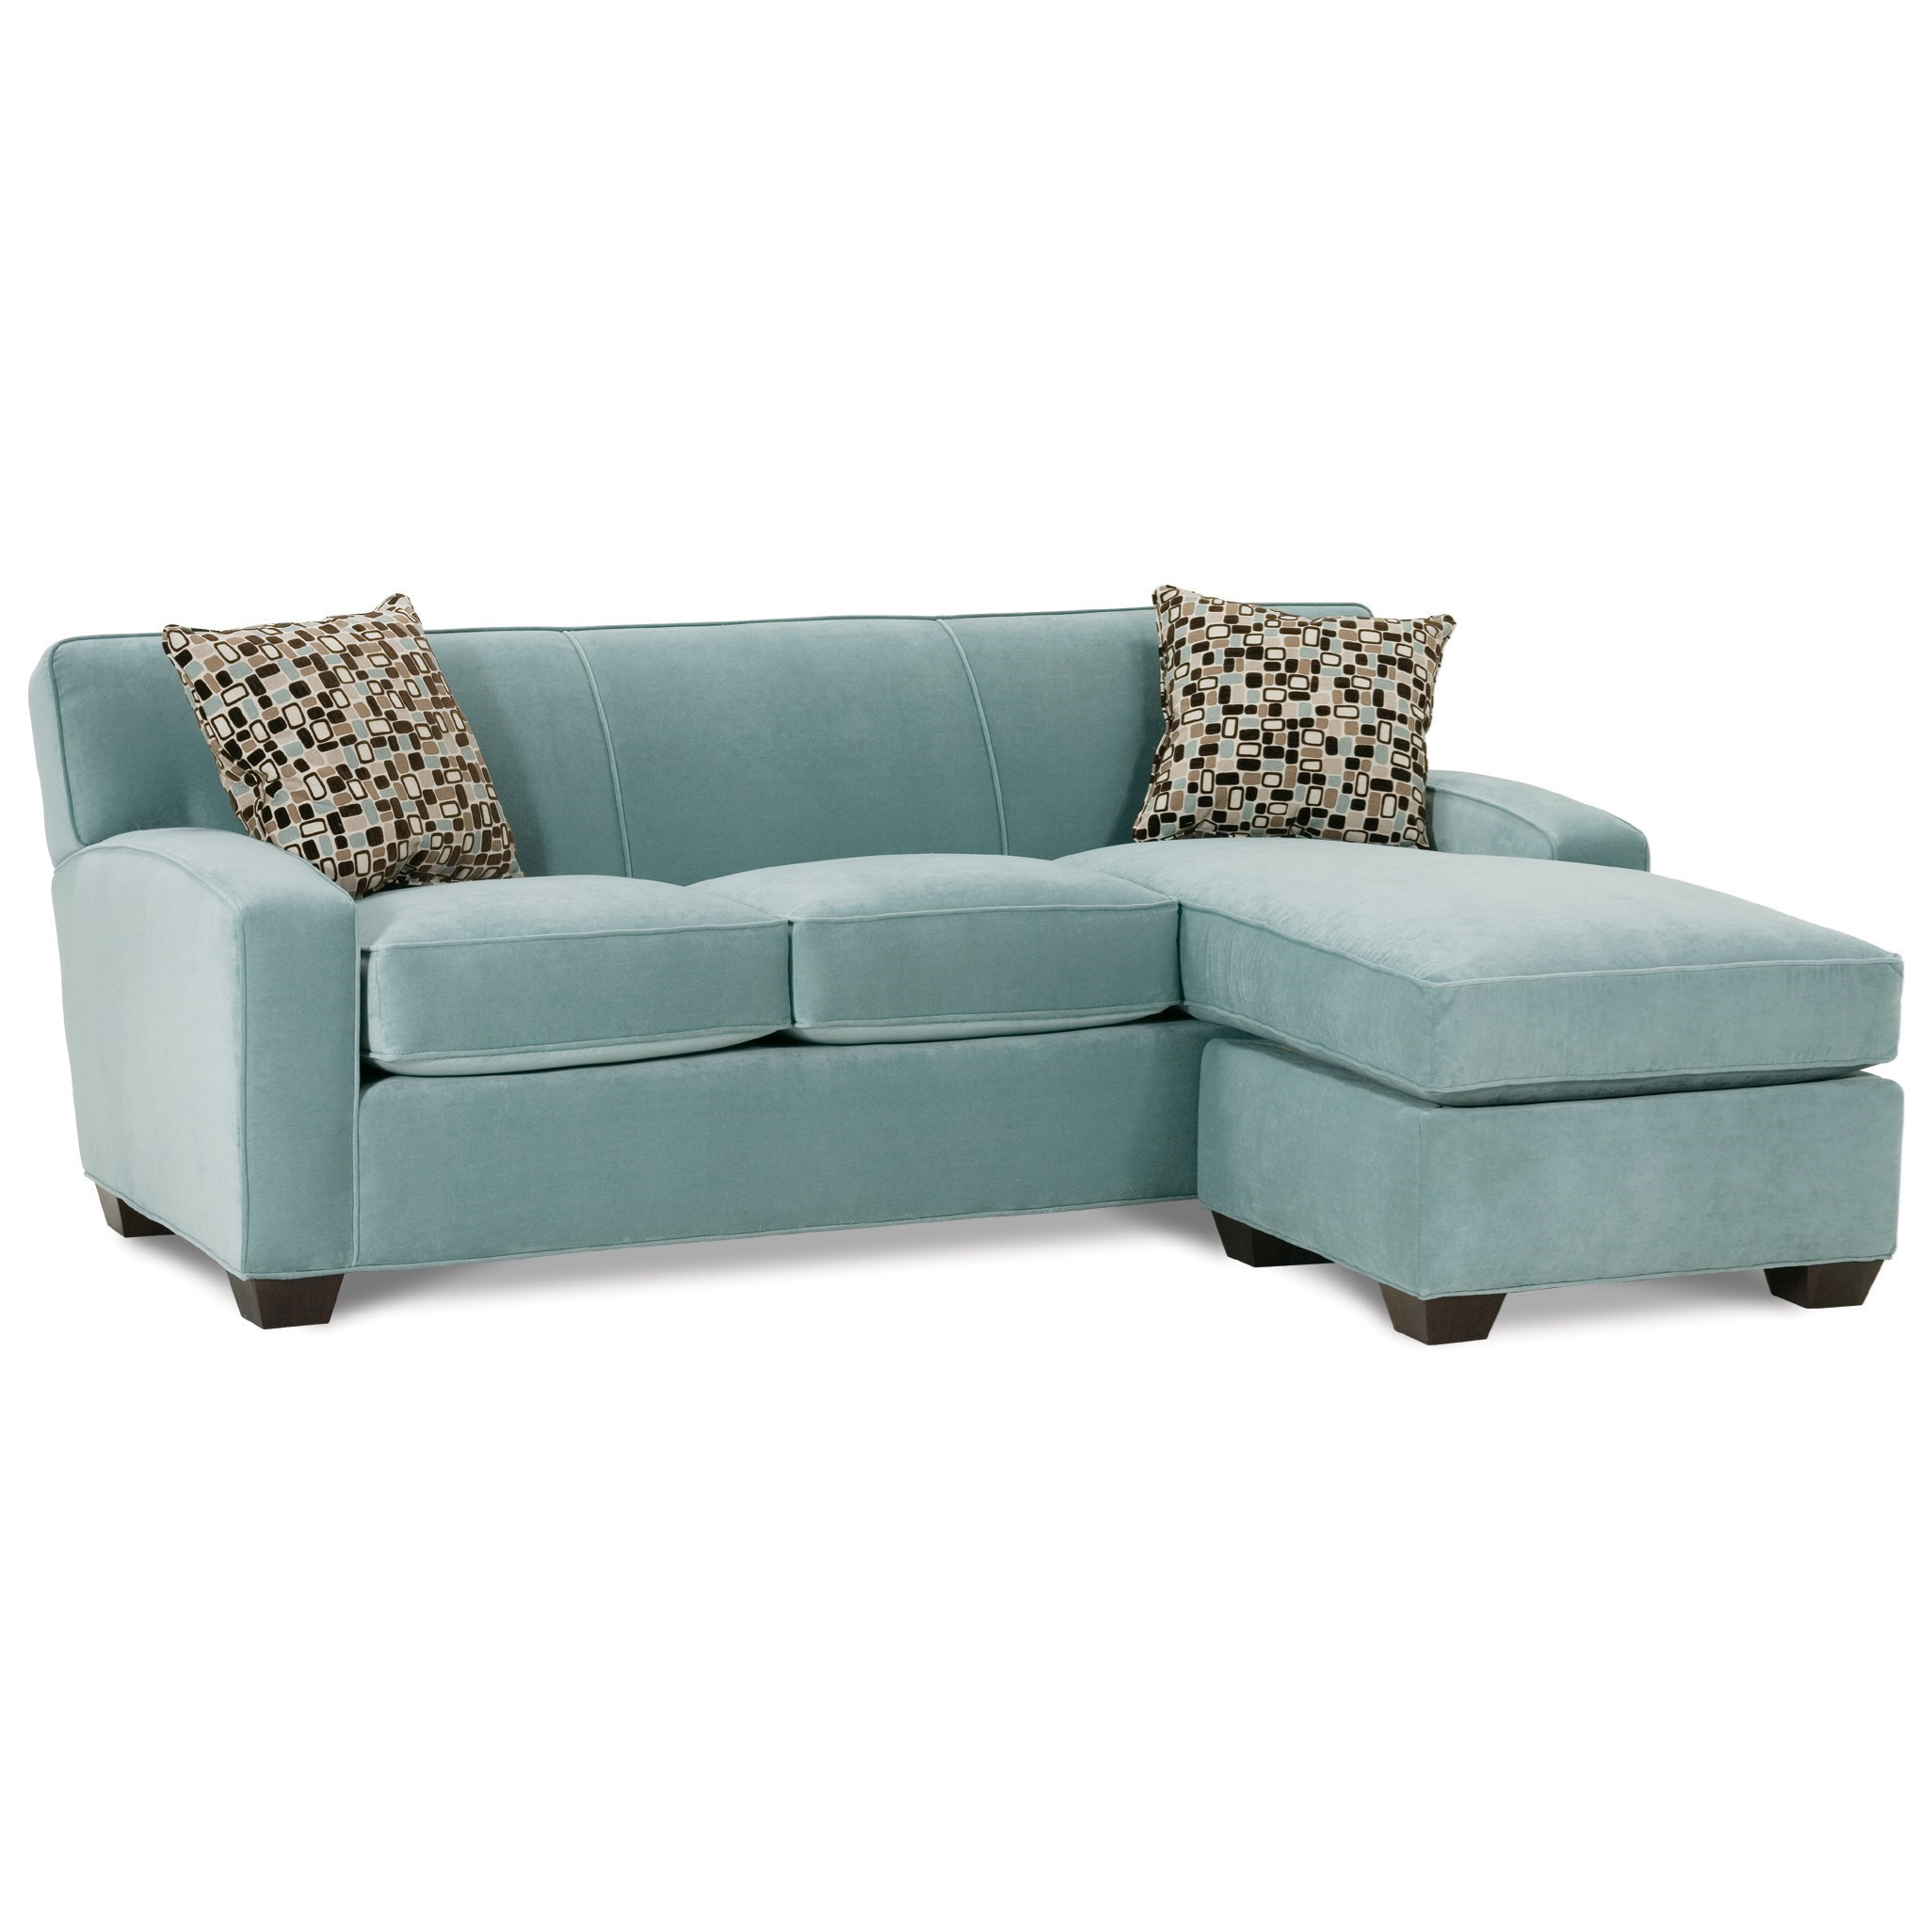 Horizon Stationary Sectional with Chaise by Rowe at Baer's Furniture